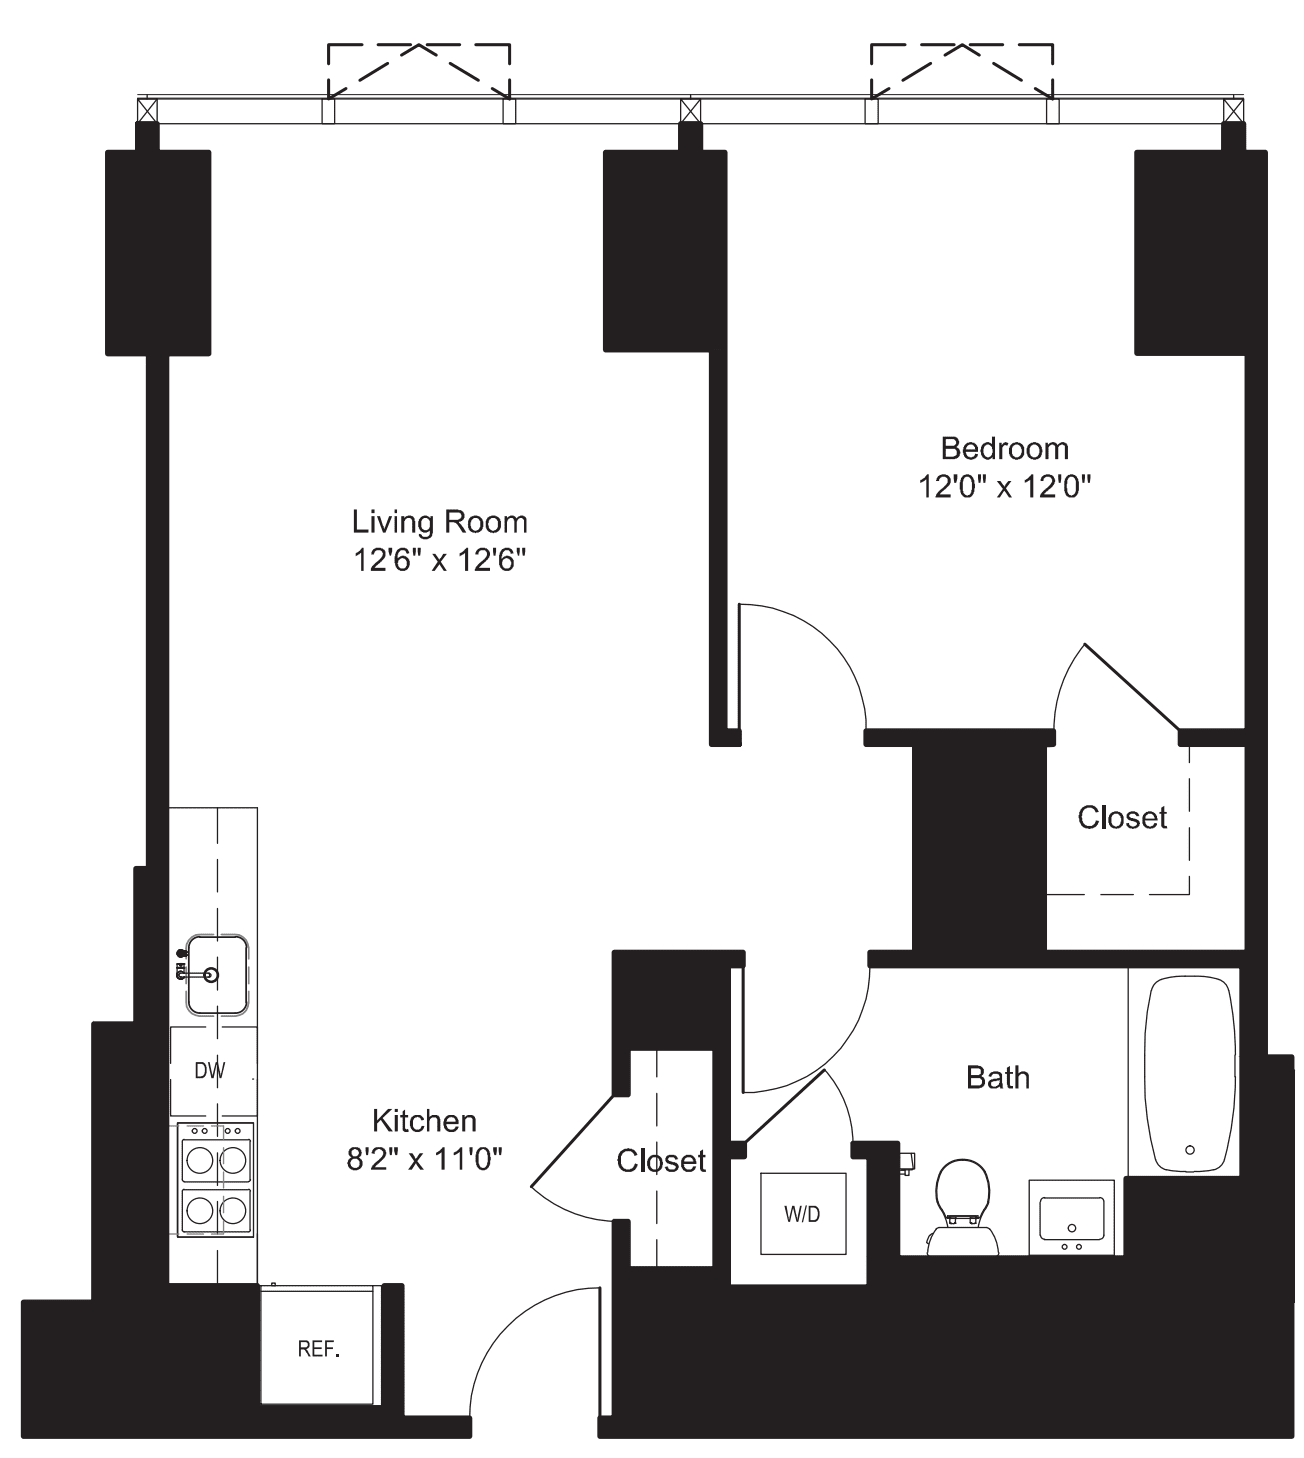 One Bedroom J 3-6, I 7-19